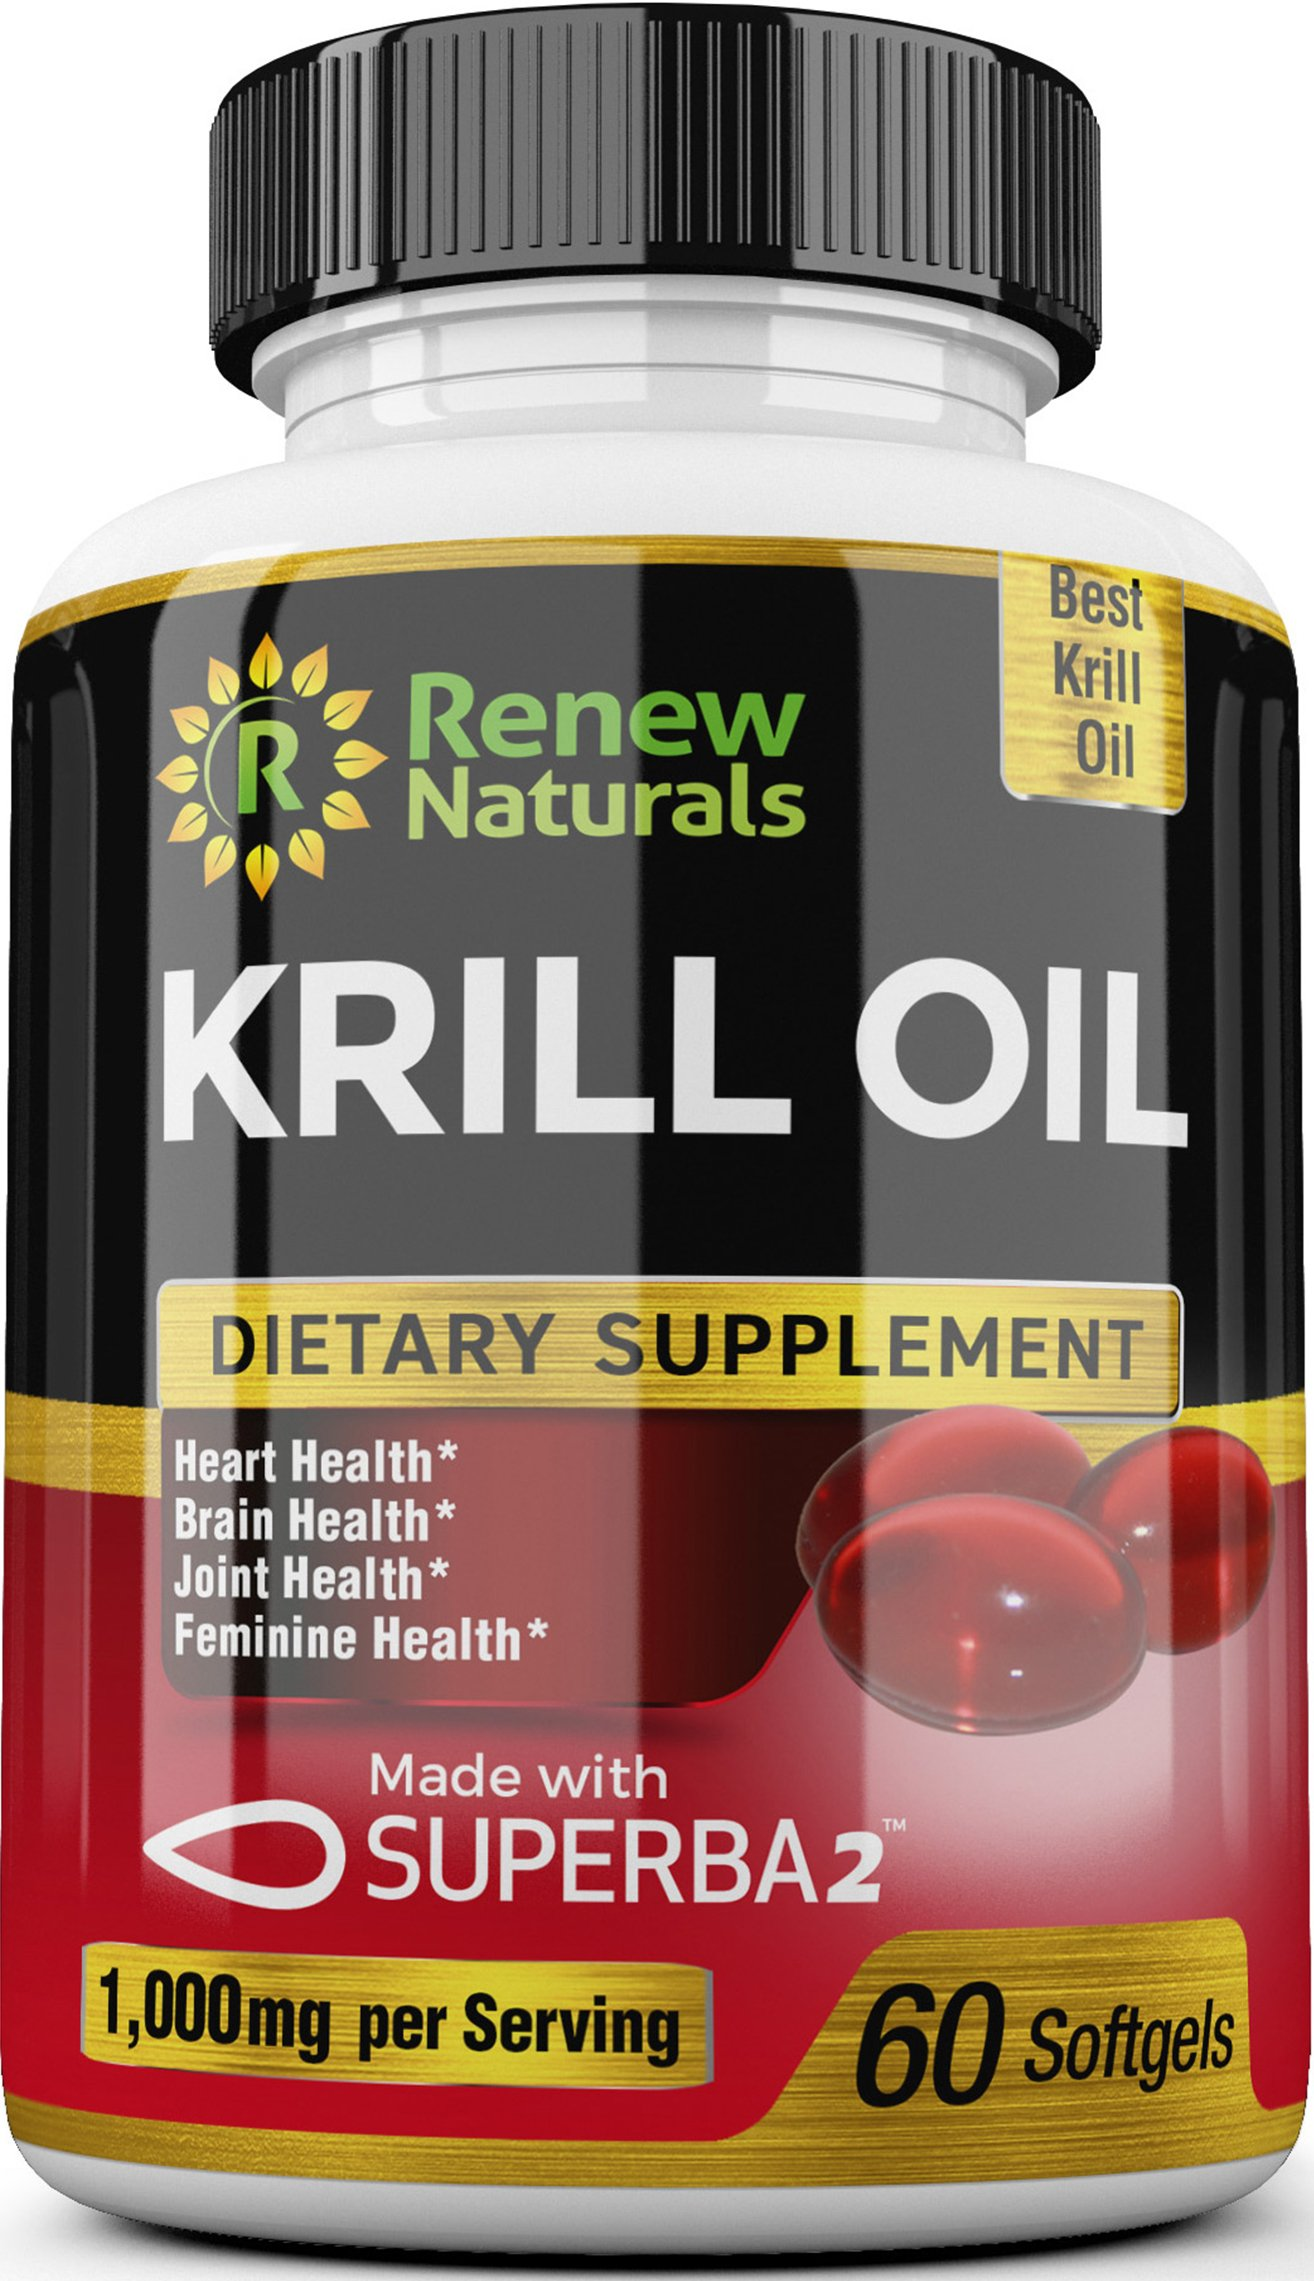 100% Pure Antarctic Krill Oil Capsules 1000mg serving w/Astaxanthin - Supports Healthy Heart Brain Joints - Omega 3 Highest Quality Supplement - 60 Softgels. 100% Money Back Guarantee!